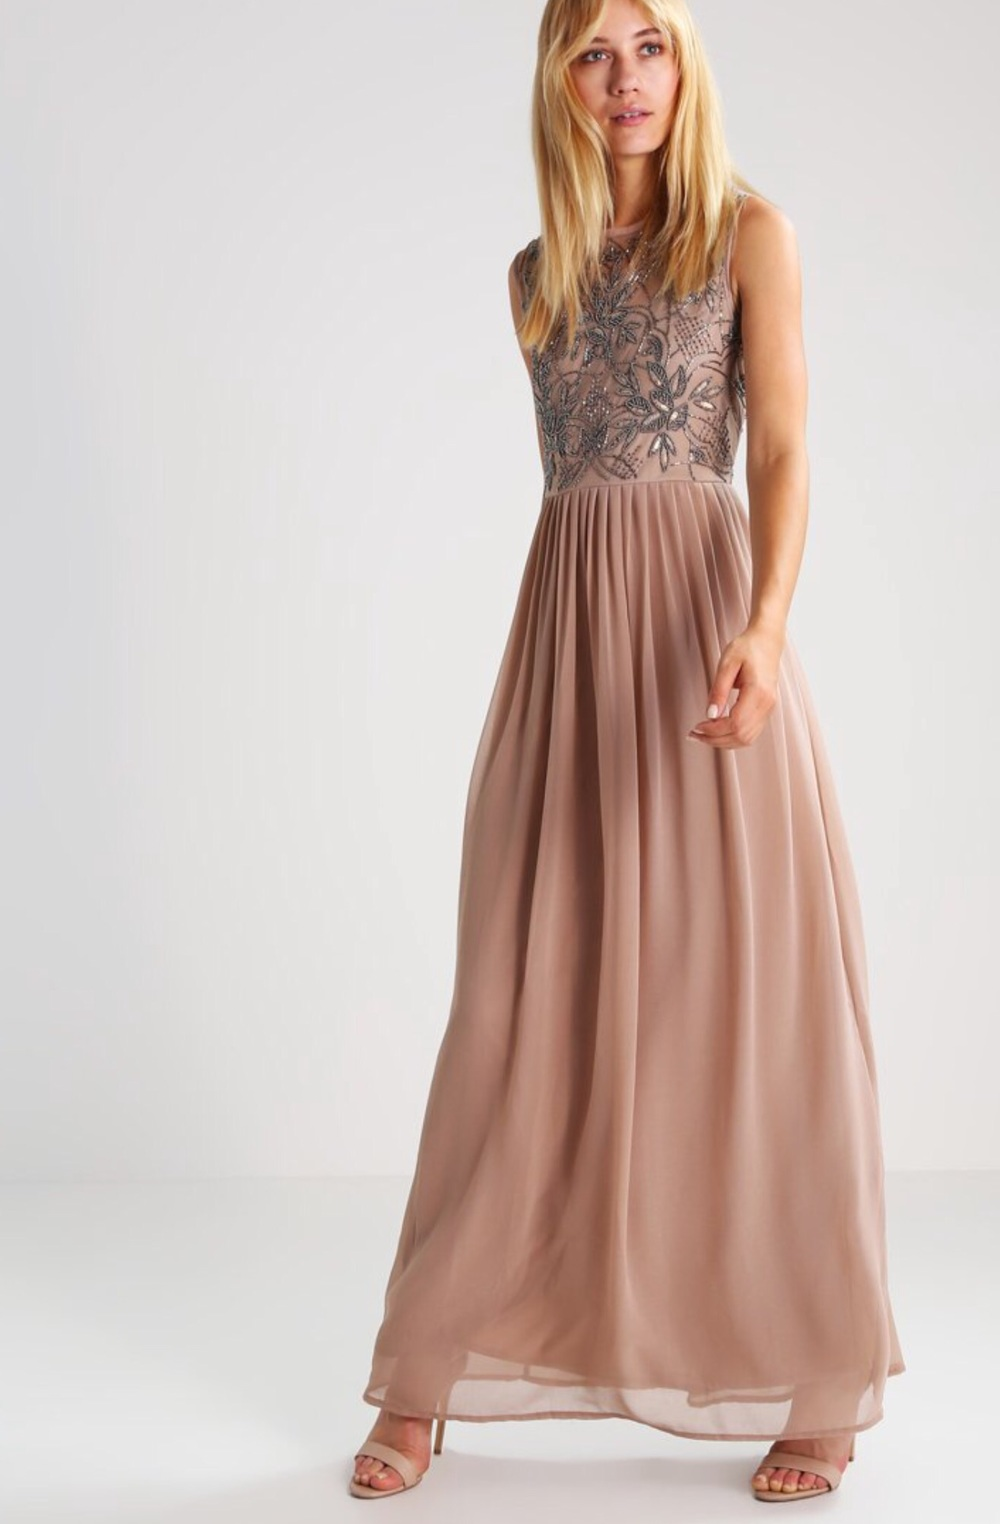 Nude Maxi Dress from Zalando 849 Dkk